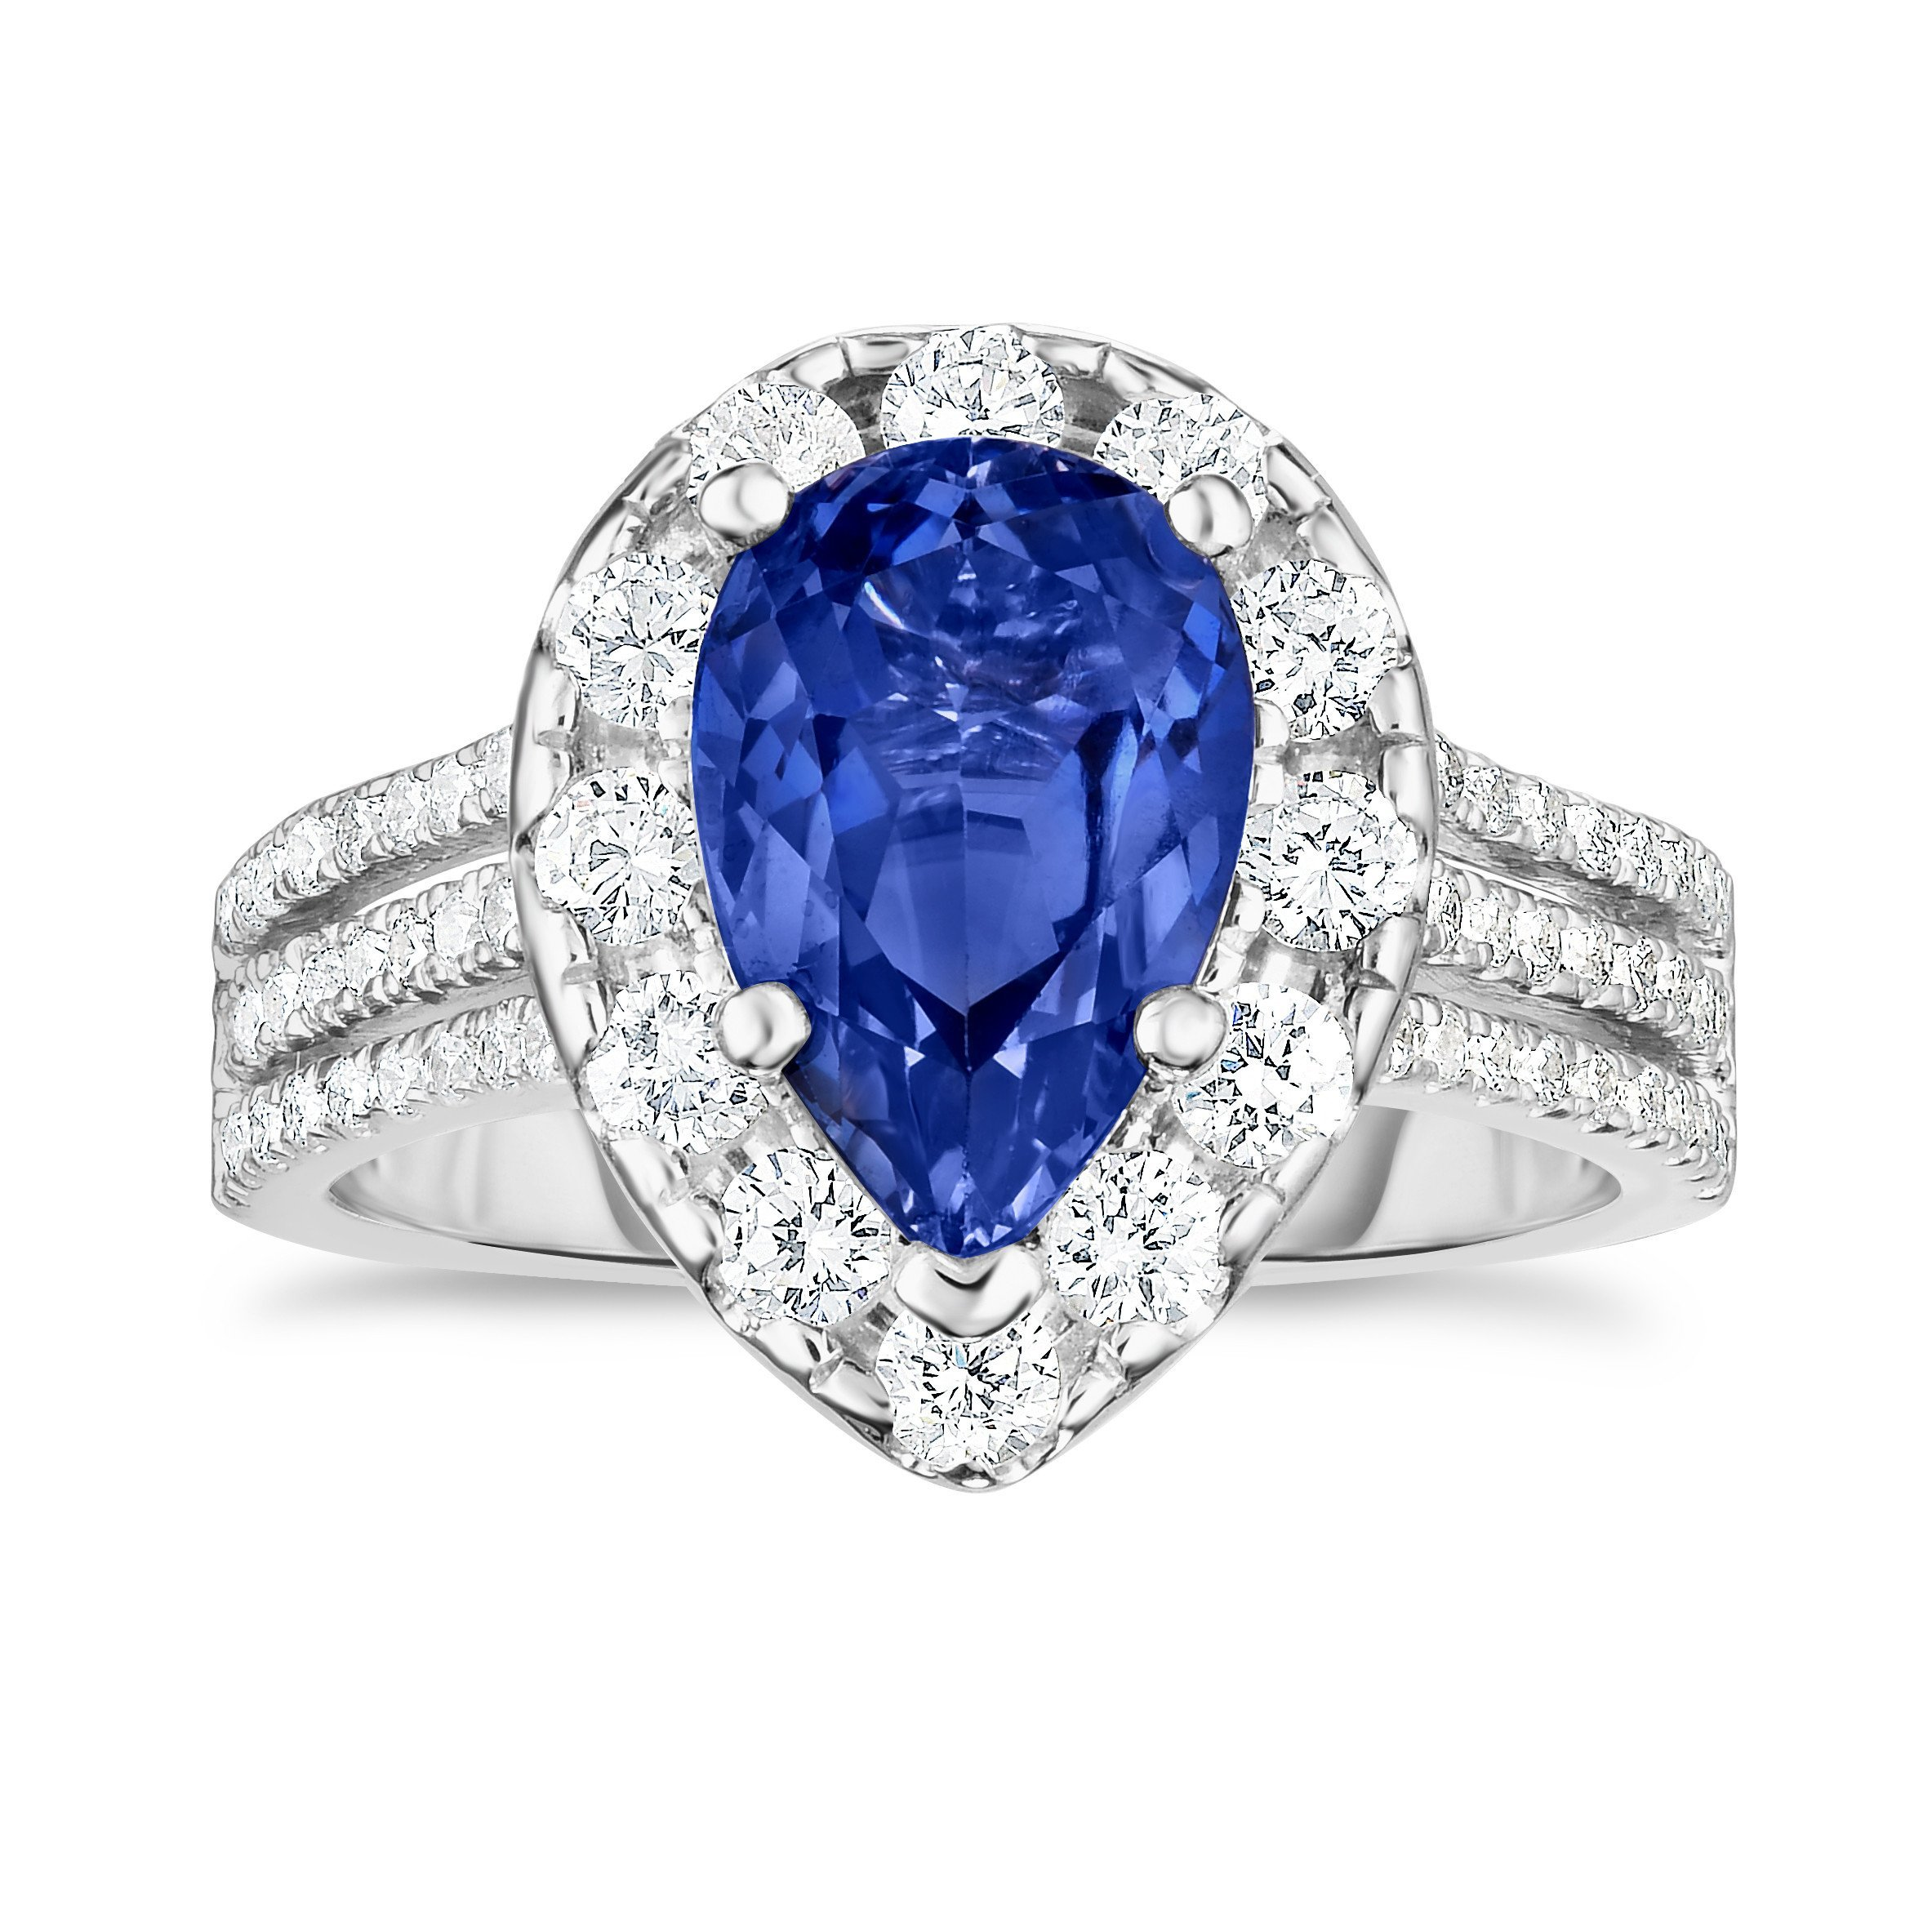 Noray Designs 14K White Gold Tanzanite & Diamond (1.50 Ct, G-H Color, SI2-I1 Clarity) Engagement Ring